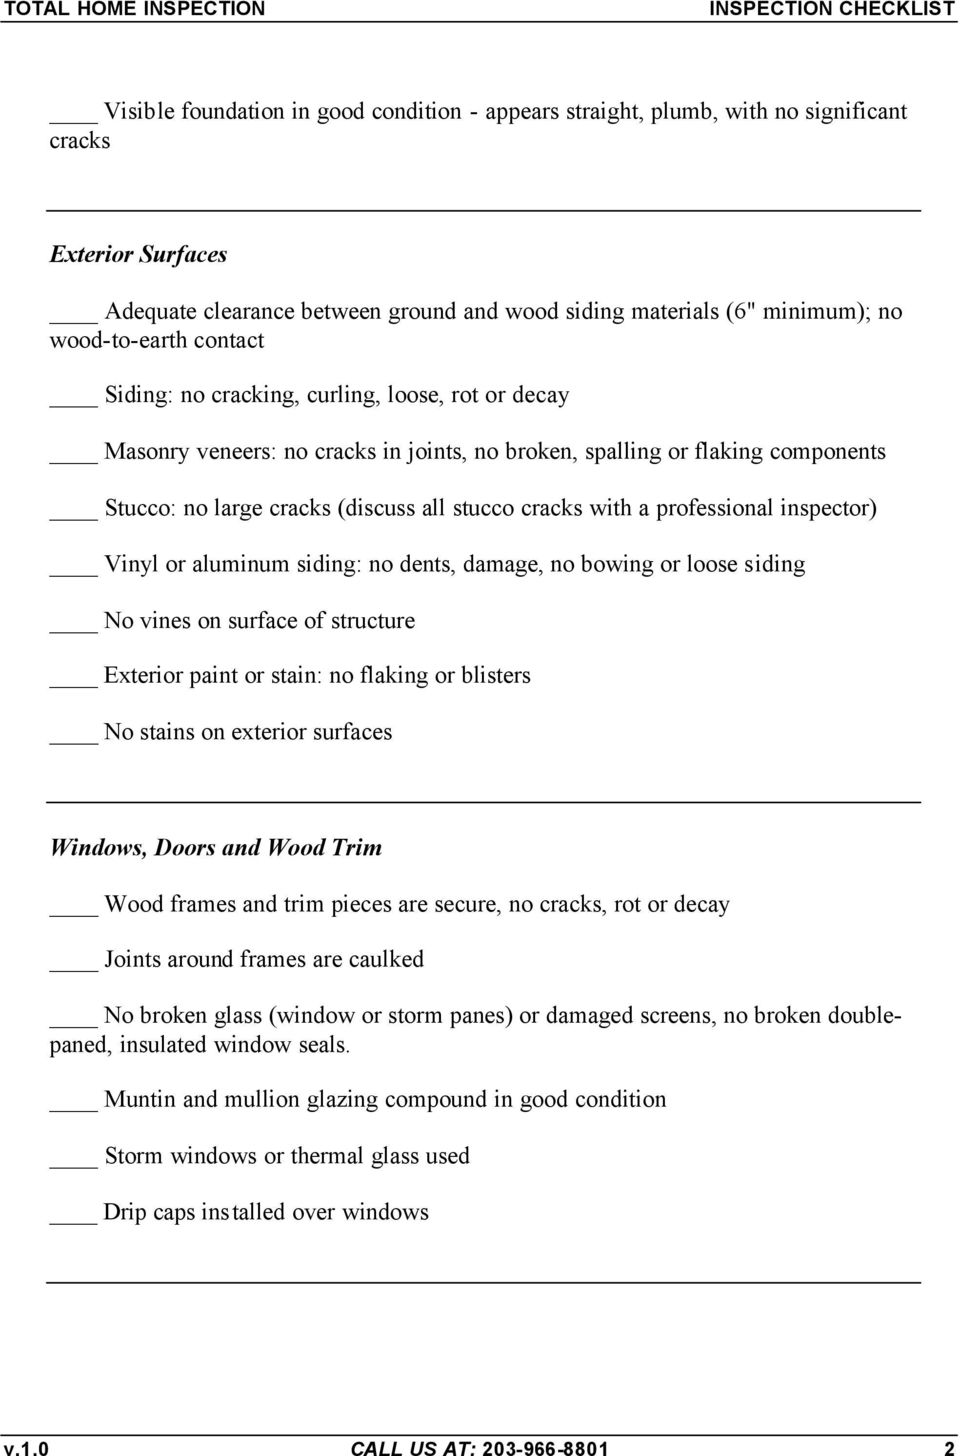 Total Home Inspection Checklist - PDF